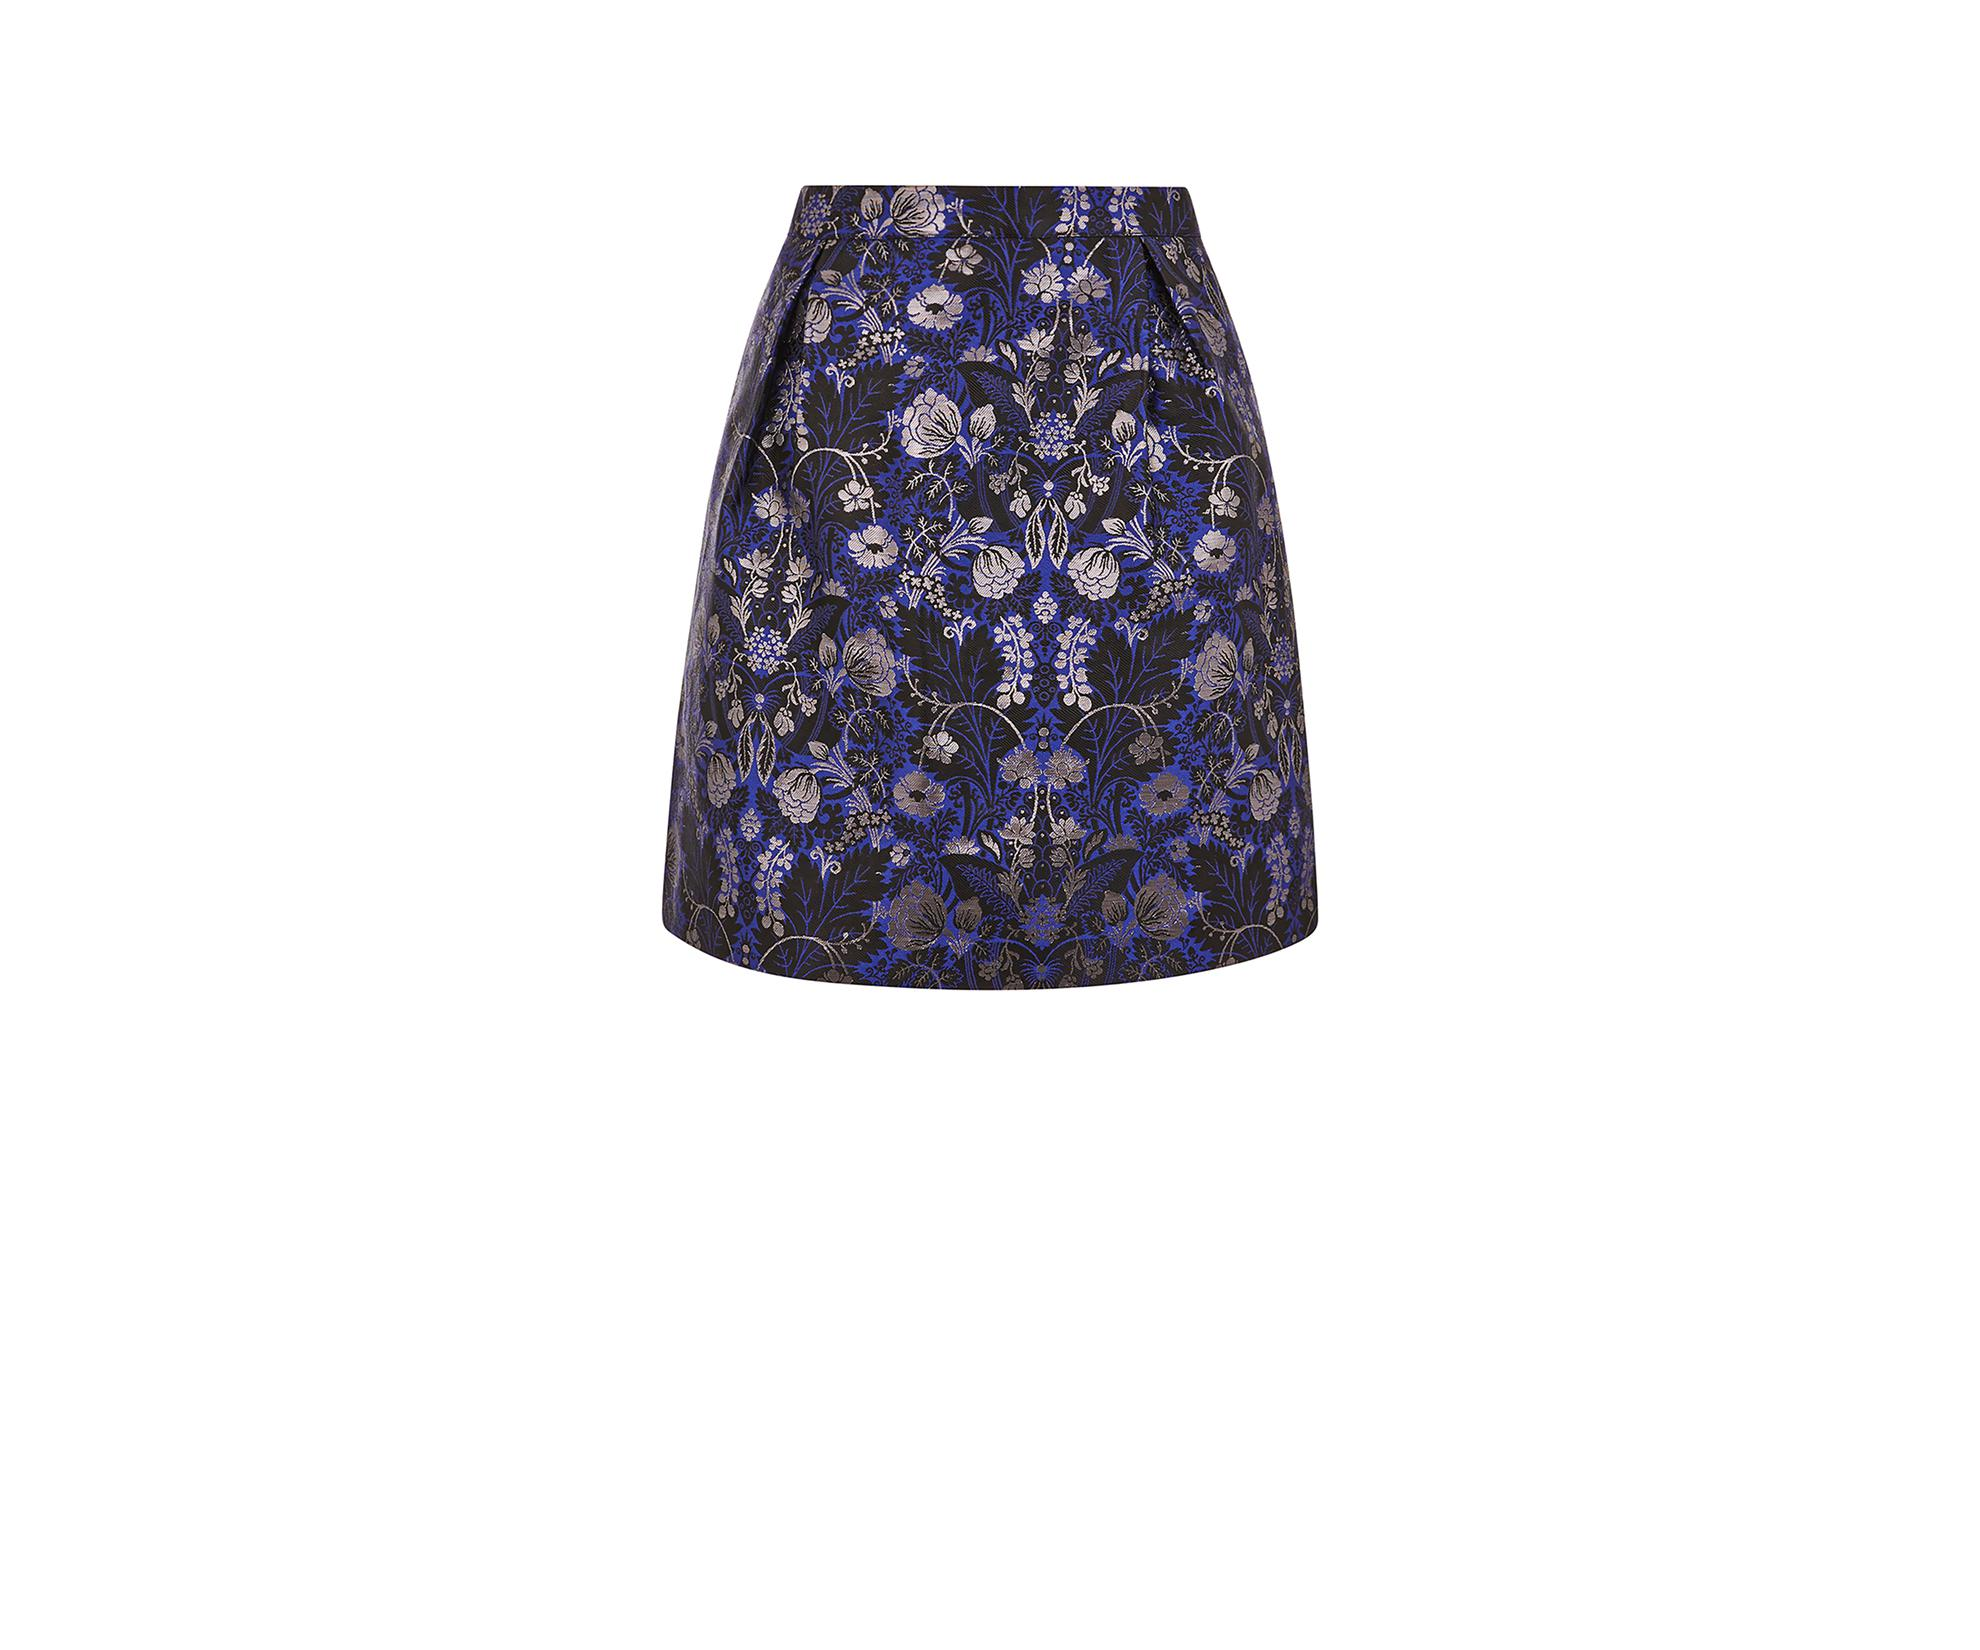 acf4ee4296d5 Oasis Marley Jacquard Mini Skirt in Blue - Lyst